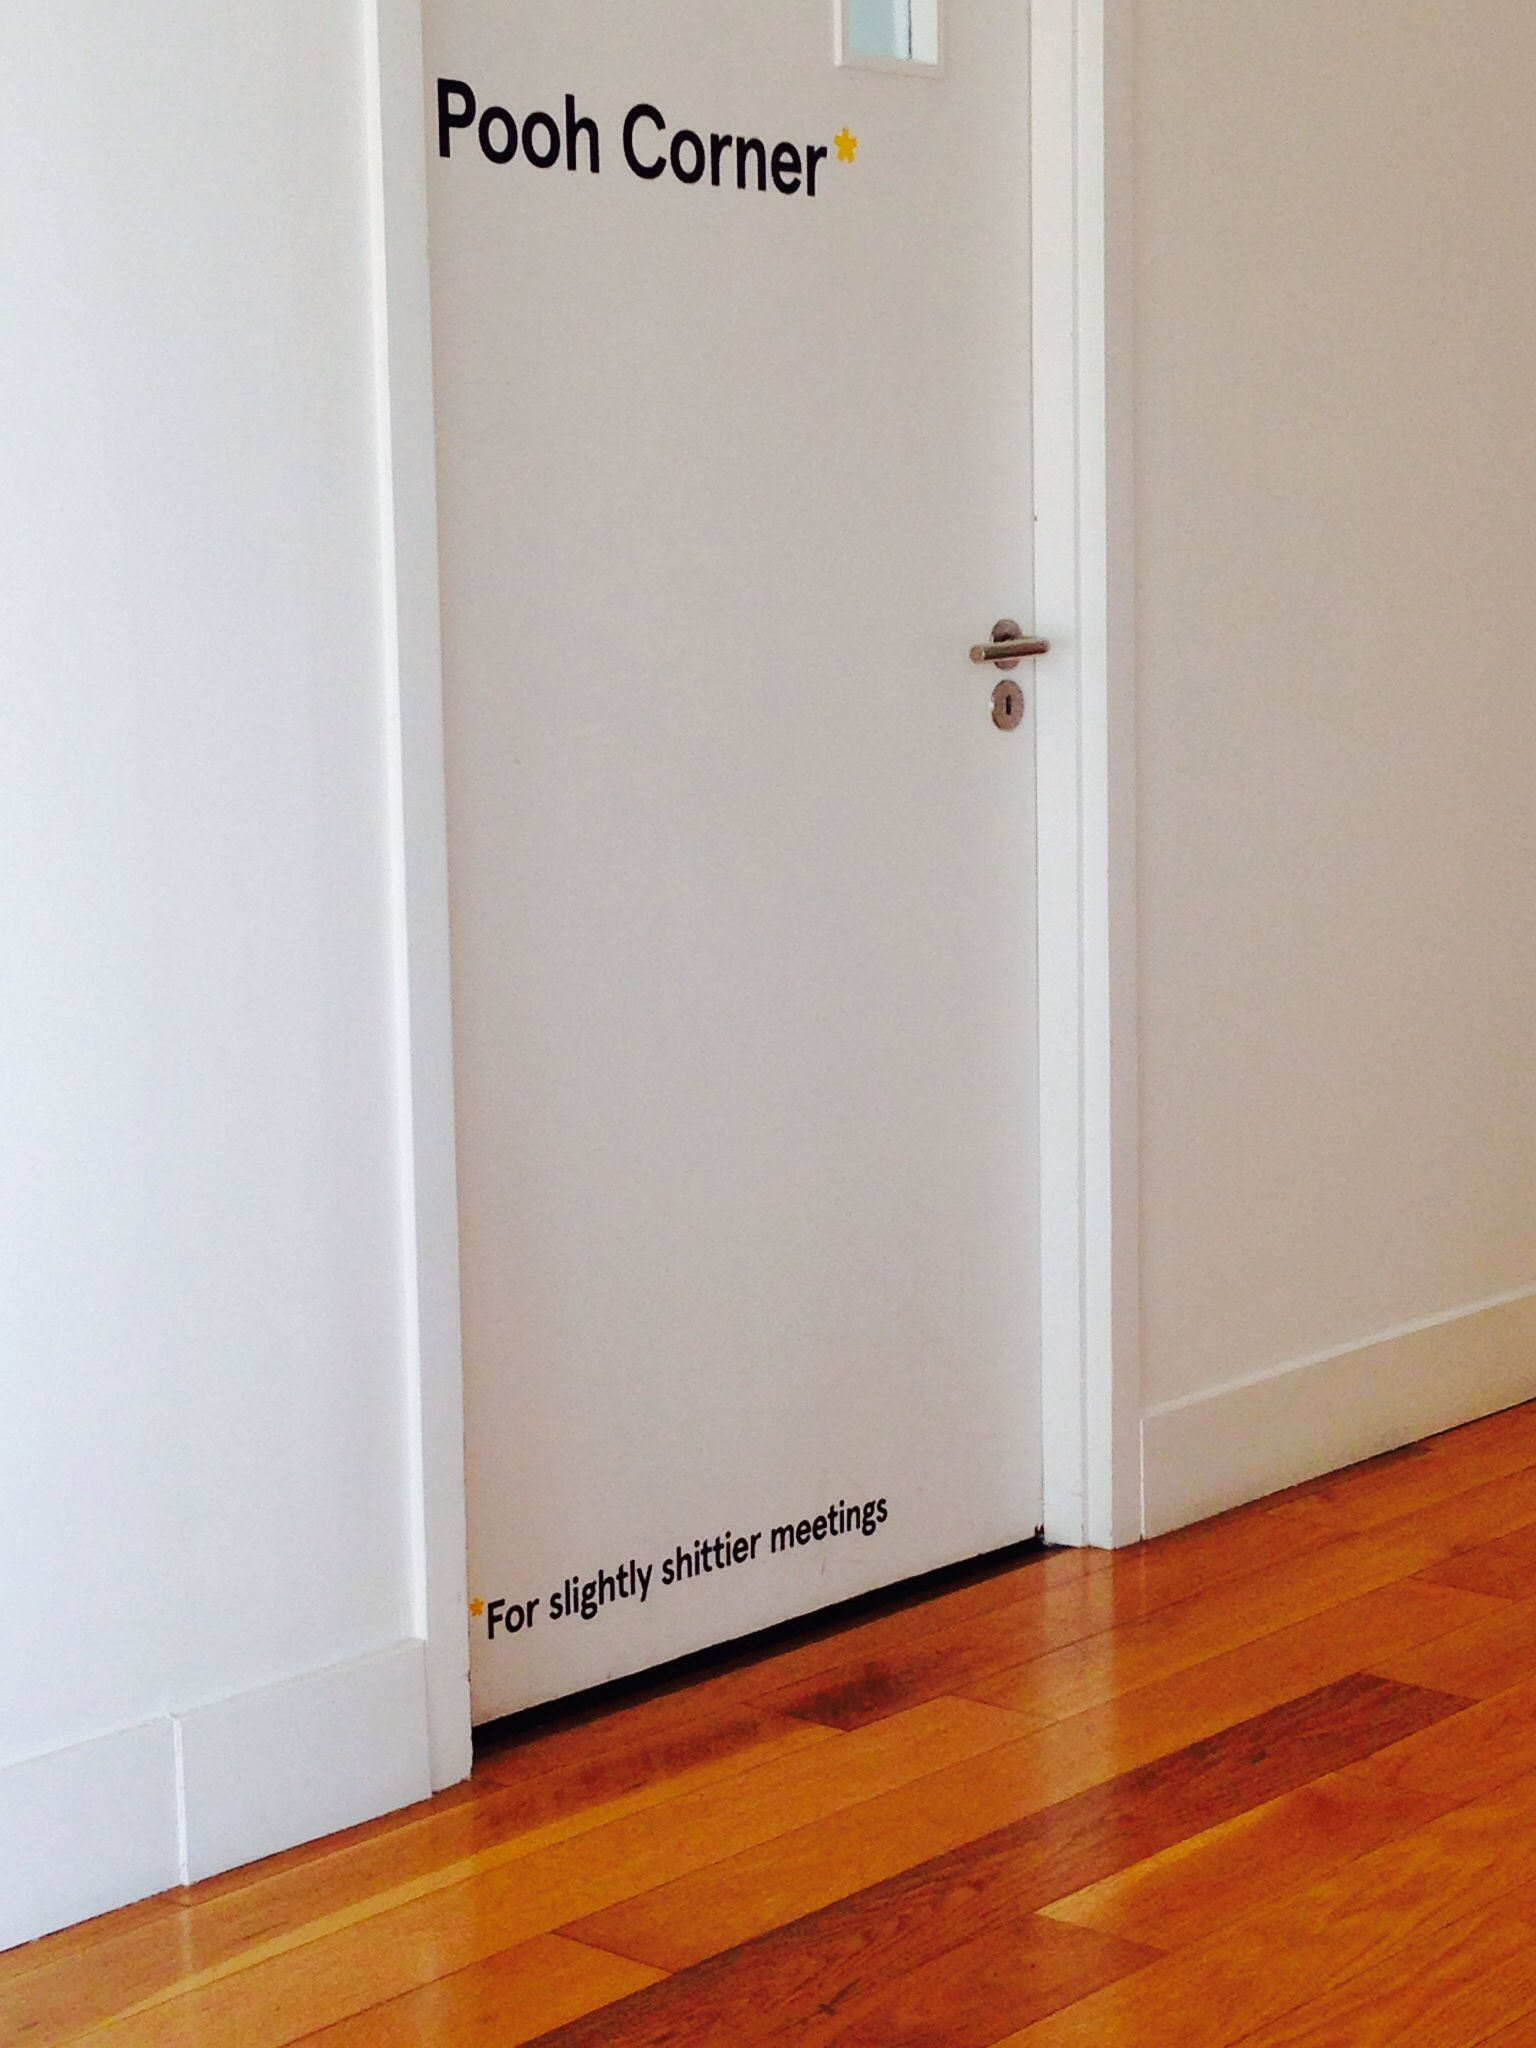 office space names. Brilliant Meeting Room Name - Check Out Text At The Foot Of Door! Office Space Names 7